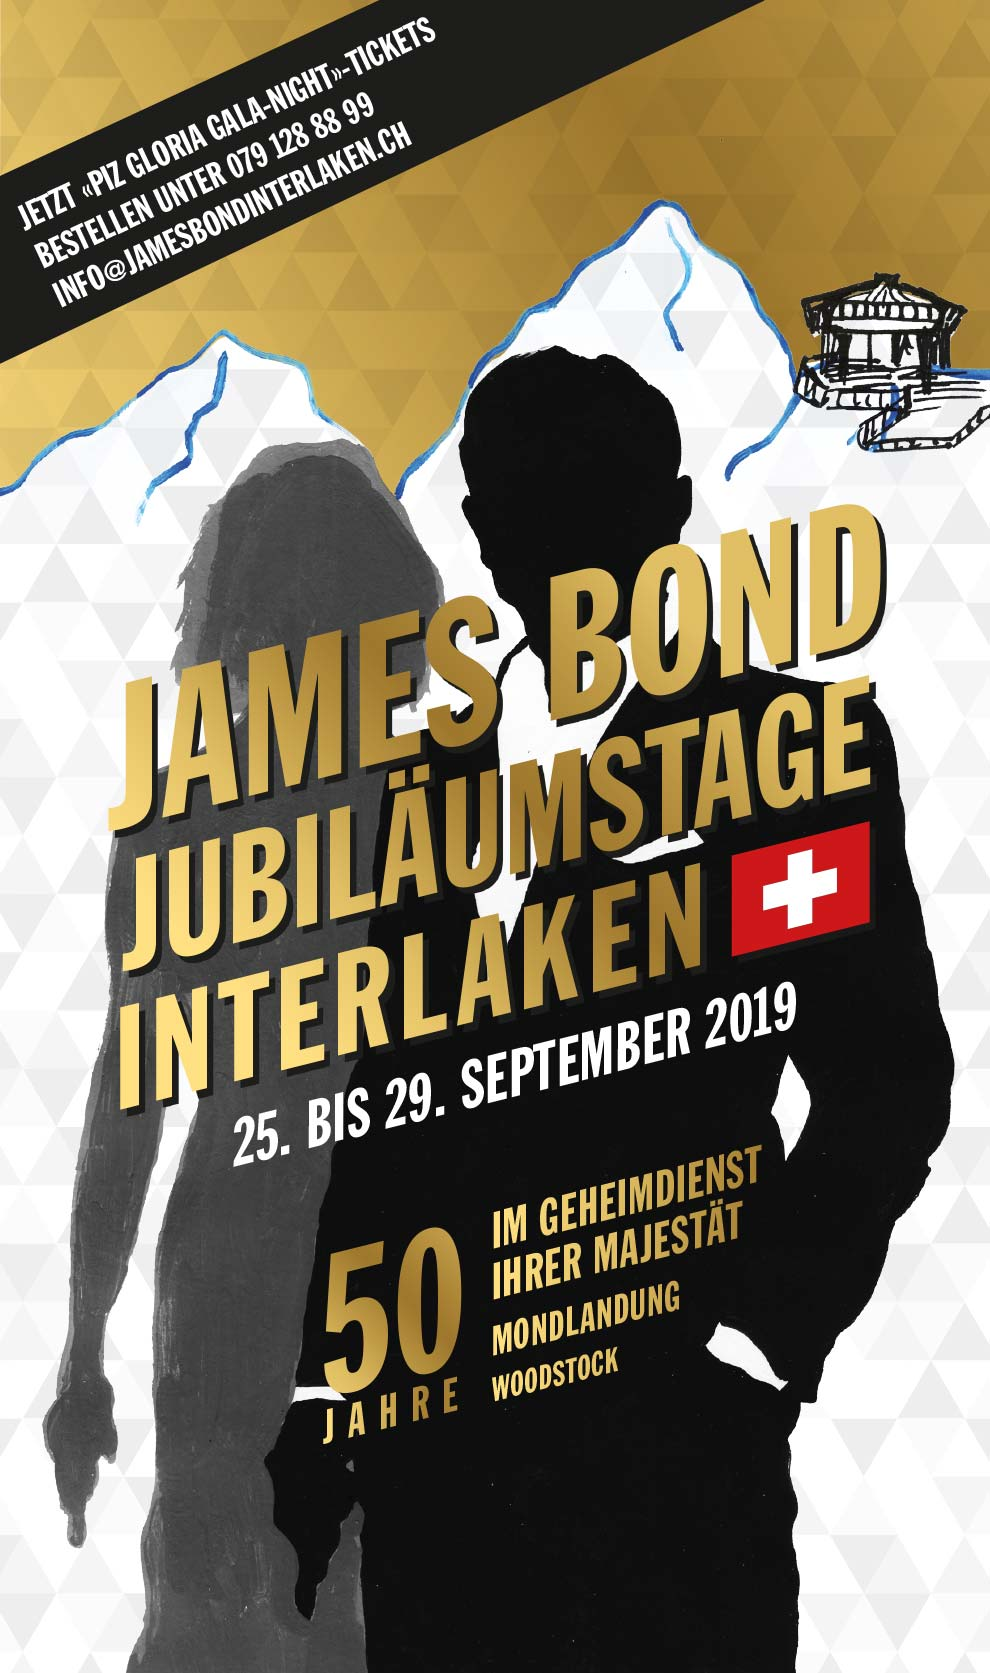 JAMES BOND JUBILÄUMSTAGE INTERLAKEN / 25. BIS 29. SEPTEMBER 2019